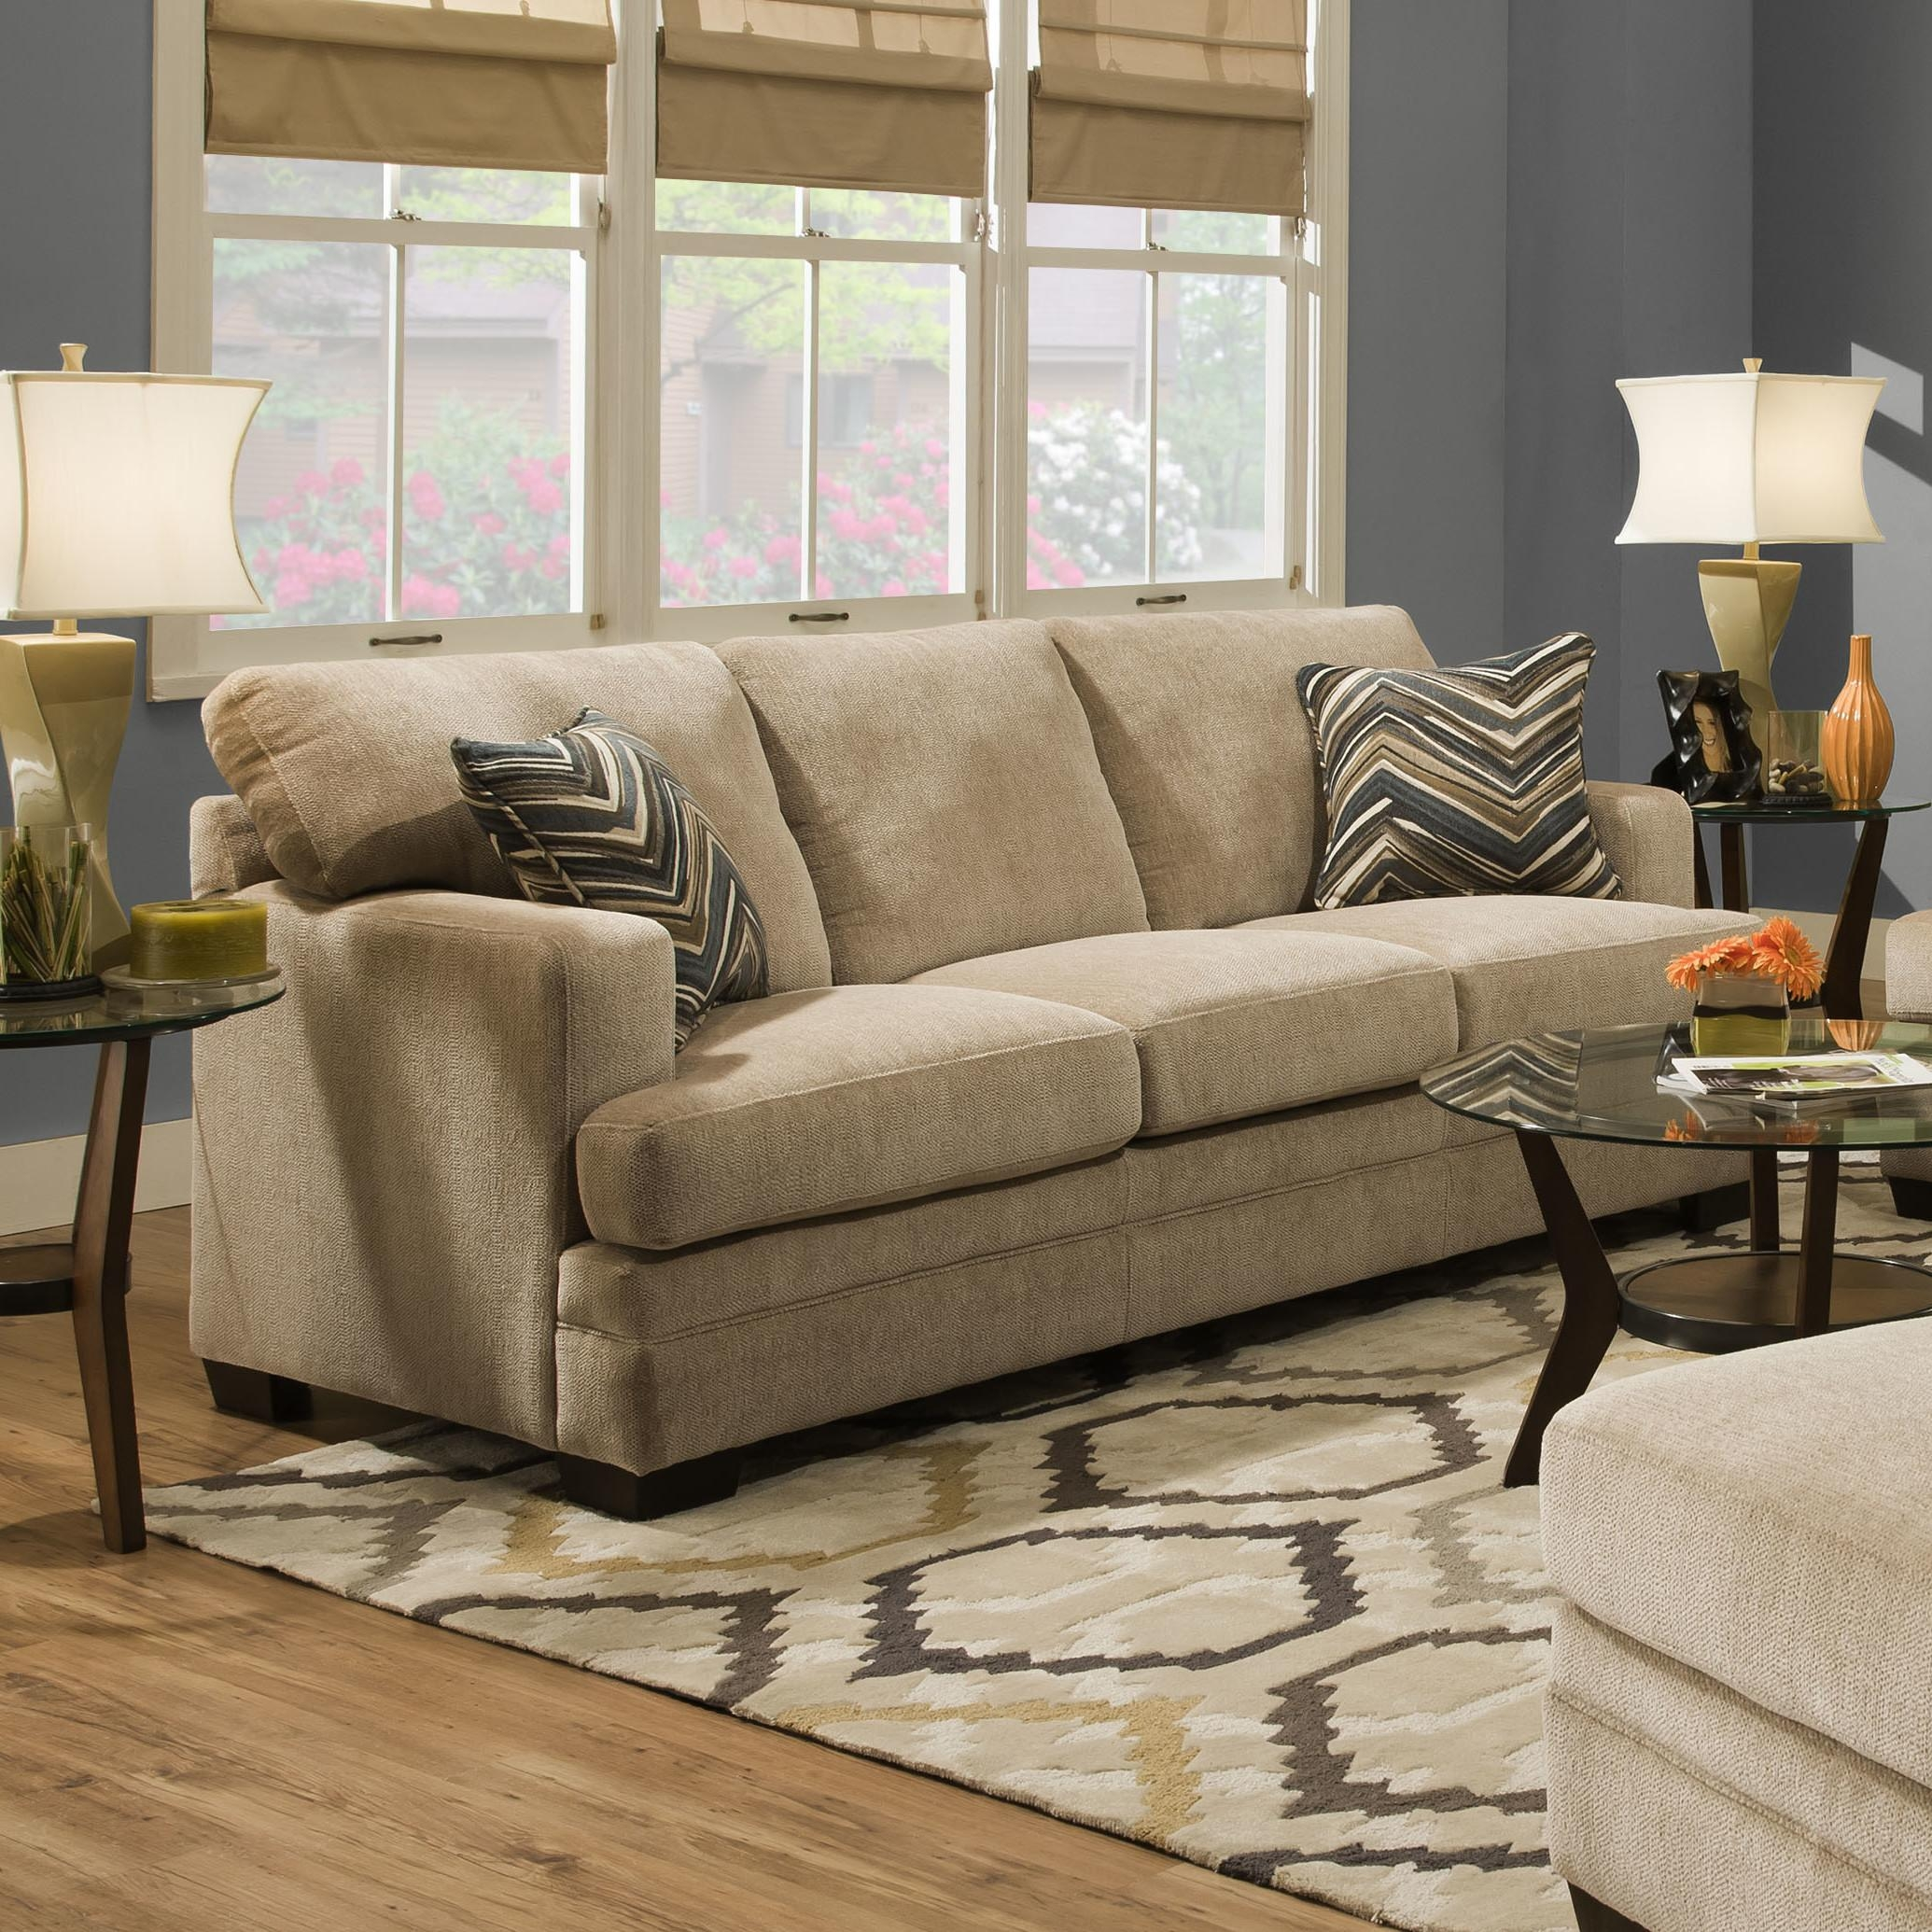 Simmons Sofas Reviews | Tehranmix Decoration With Regard To Simmons Sofas (Image 10 of 20)